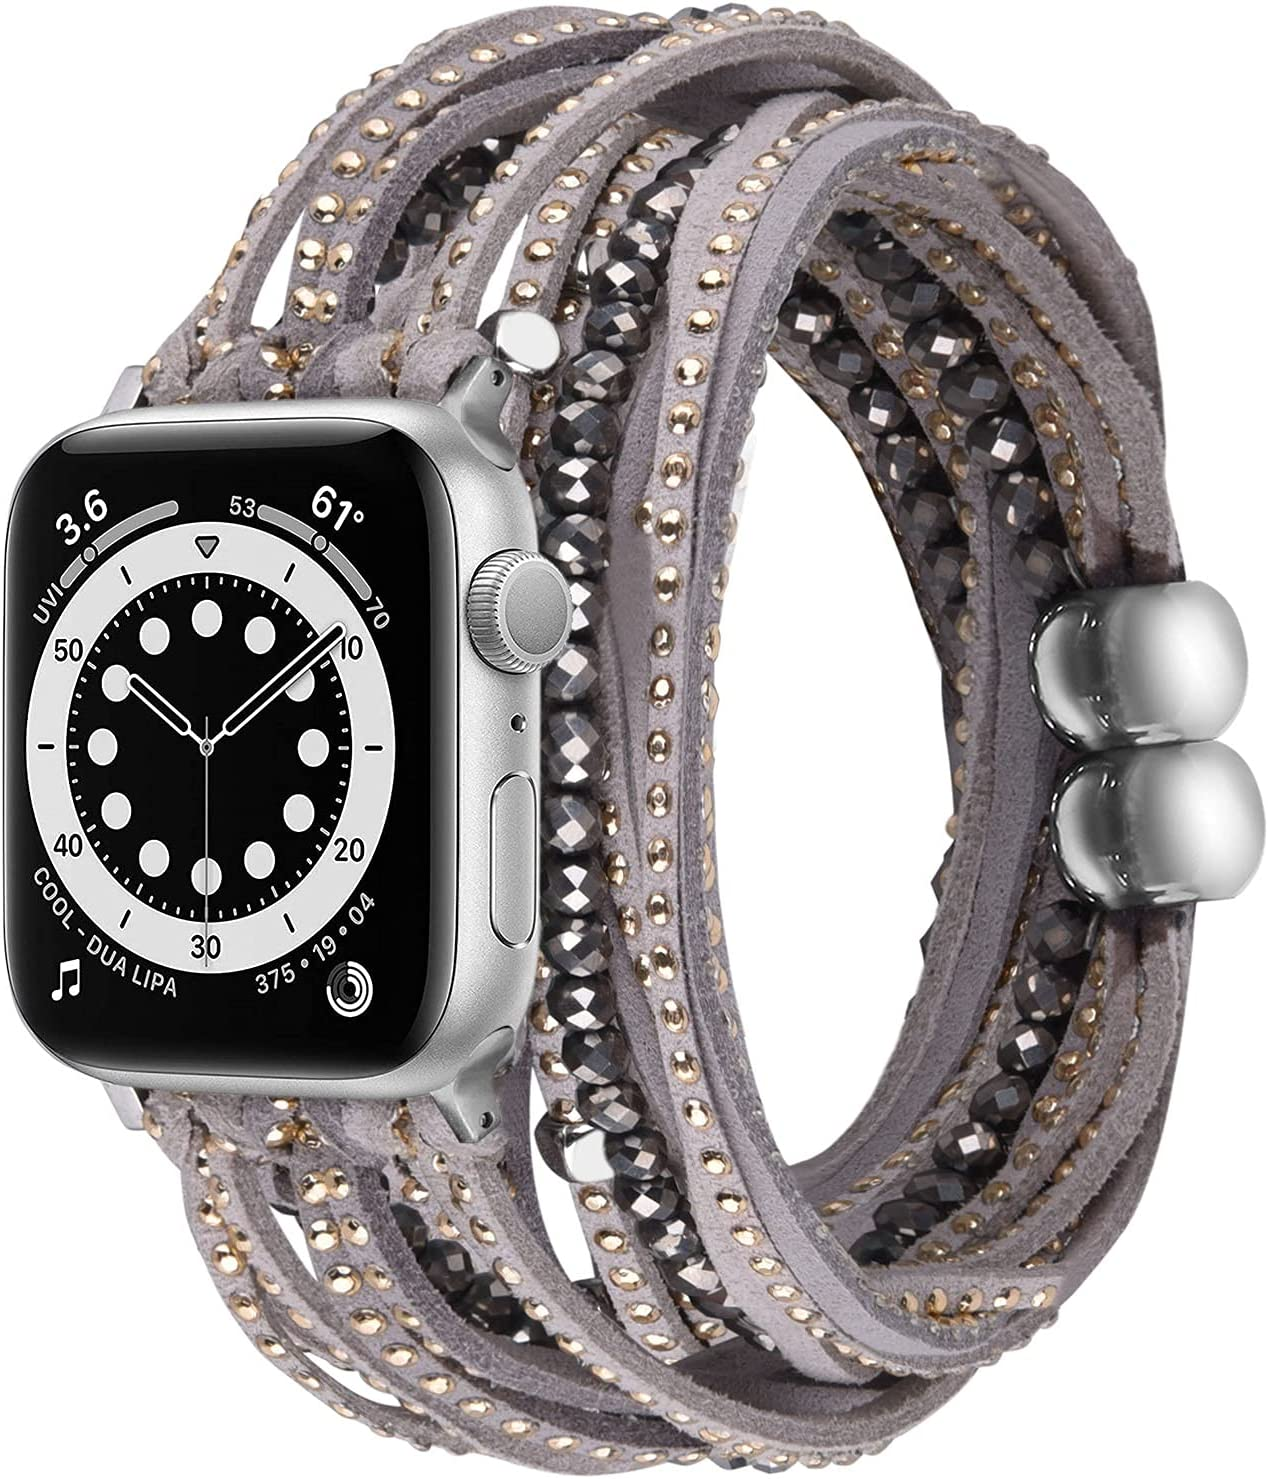 V-MORO Compatible with with Apple Watch Series 6 44mm 42mm Band Multilayer Wrap Bracelets for Women Suede Leather with Handmade Boho Bead Strap Replacement for iWatch Series 6/5/4/3/2/1/SE,Fit for 5.1